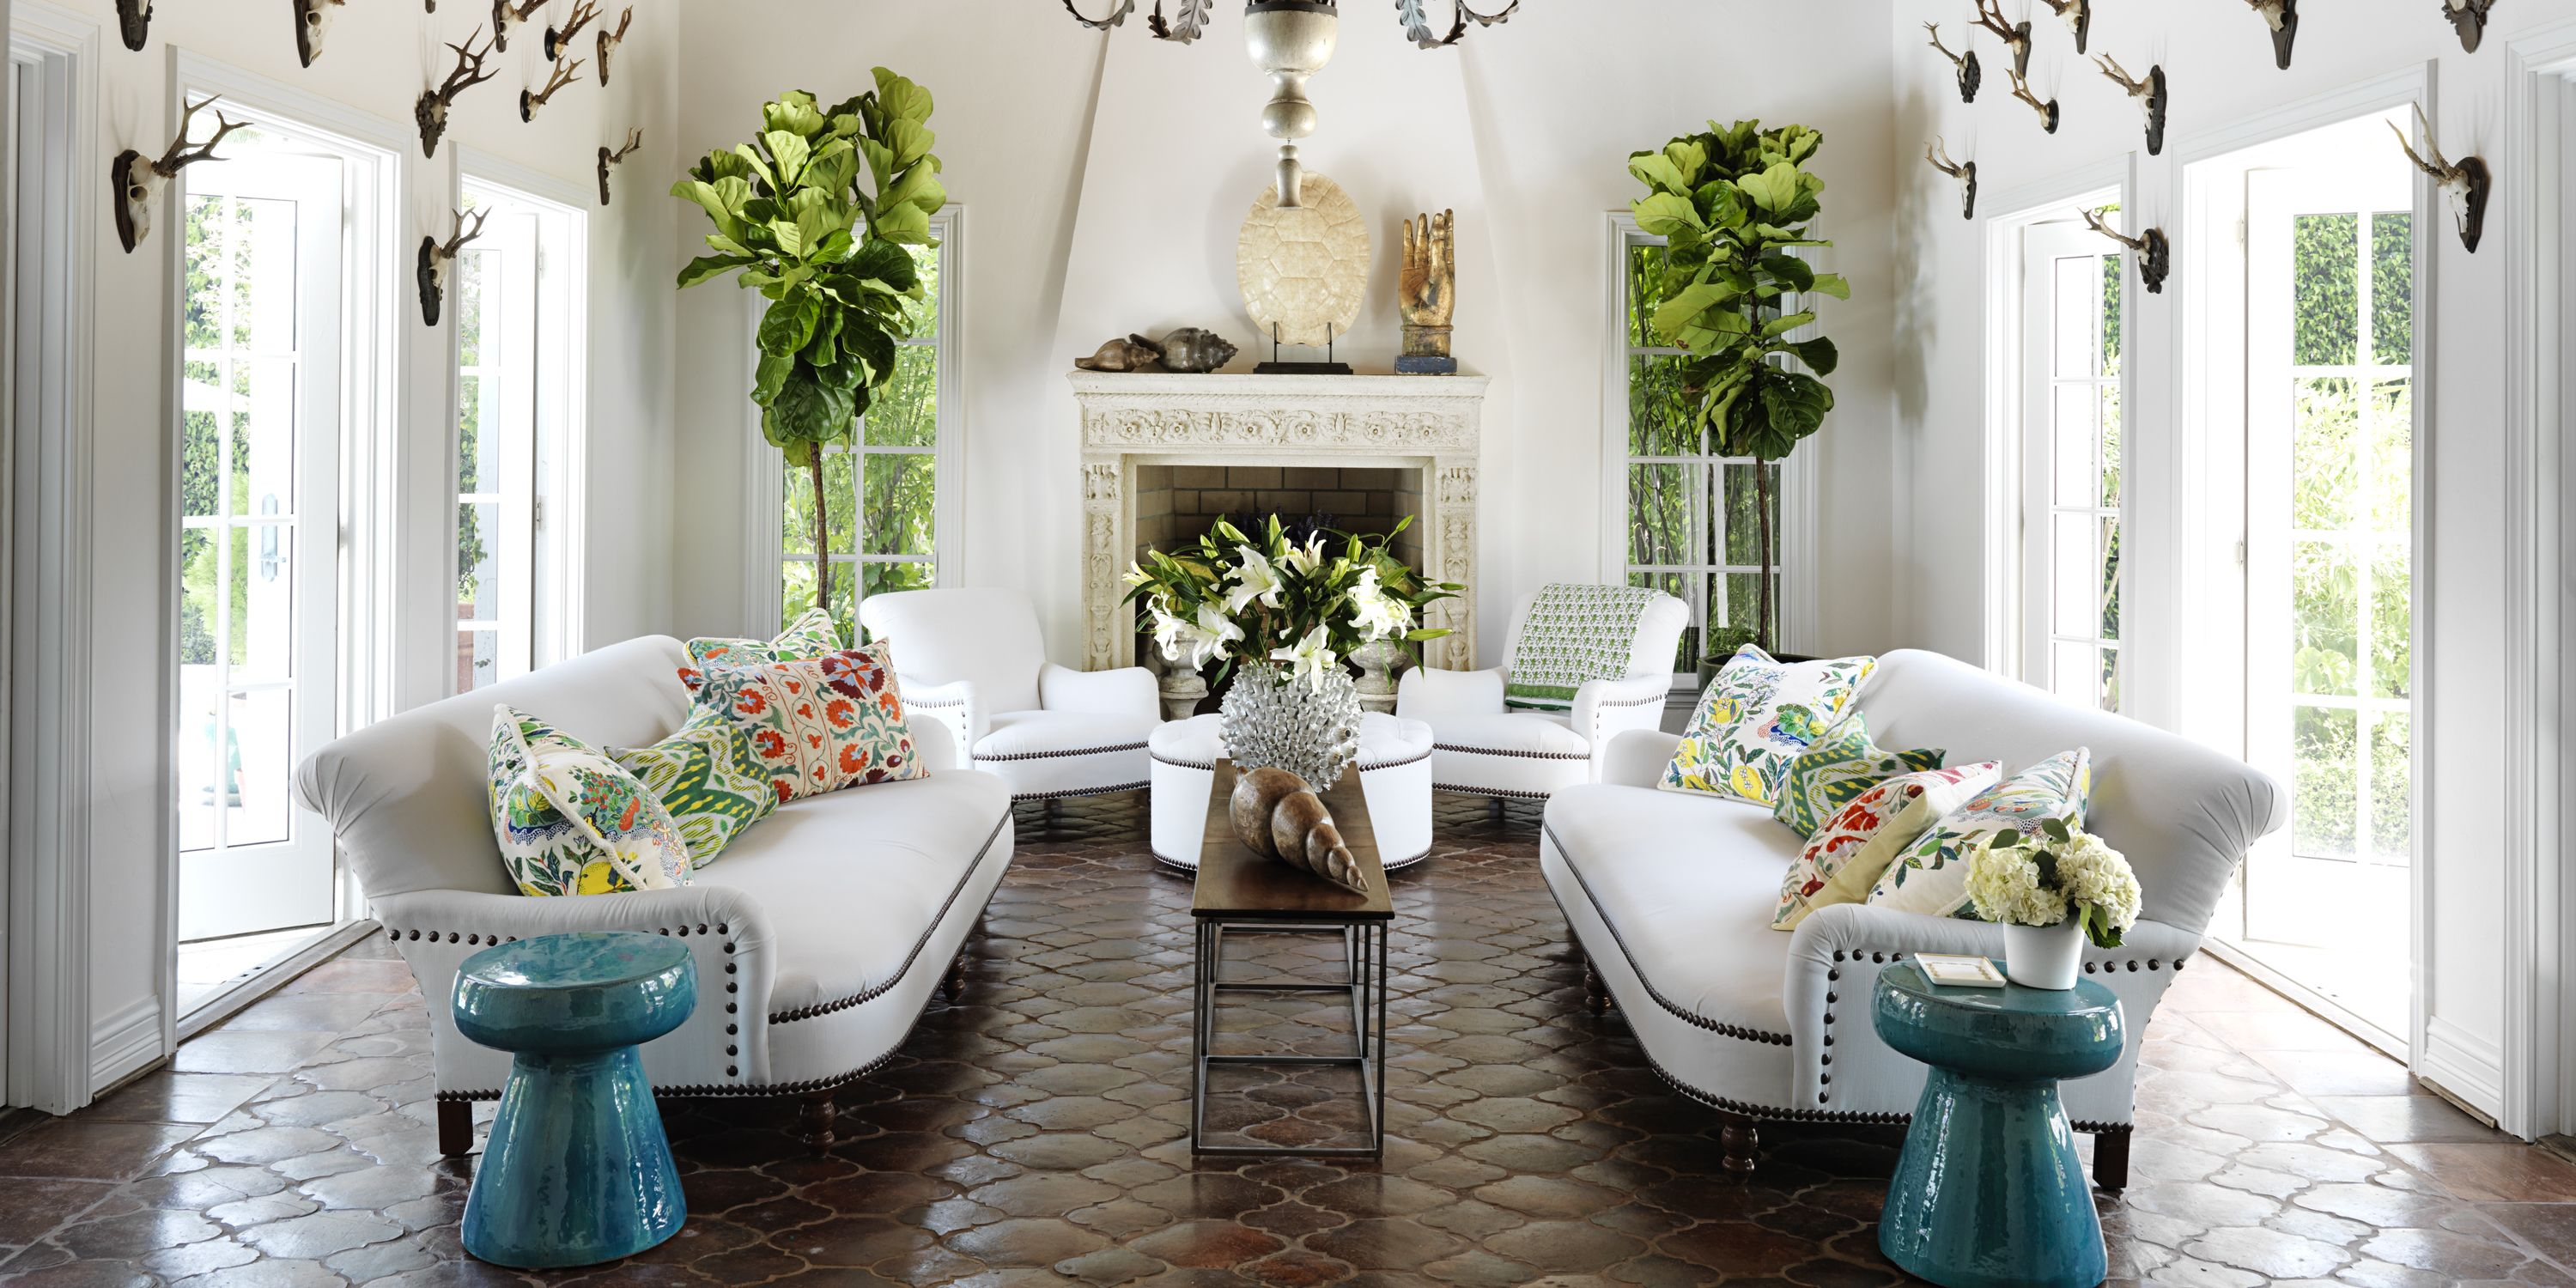 Www.housebeautiful.com Glamorous Home Decorating Ideas Kitchen Designs Paint Colors  House Beautiful Decorating Design